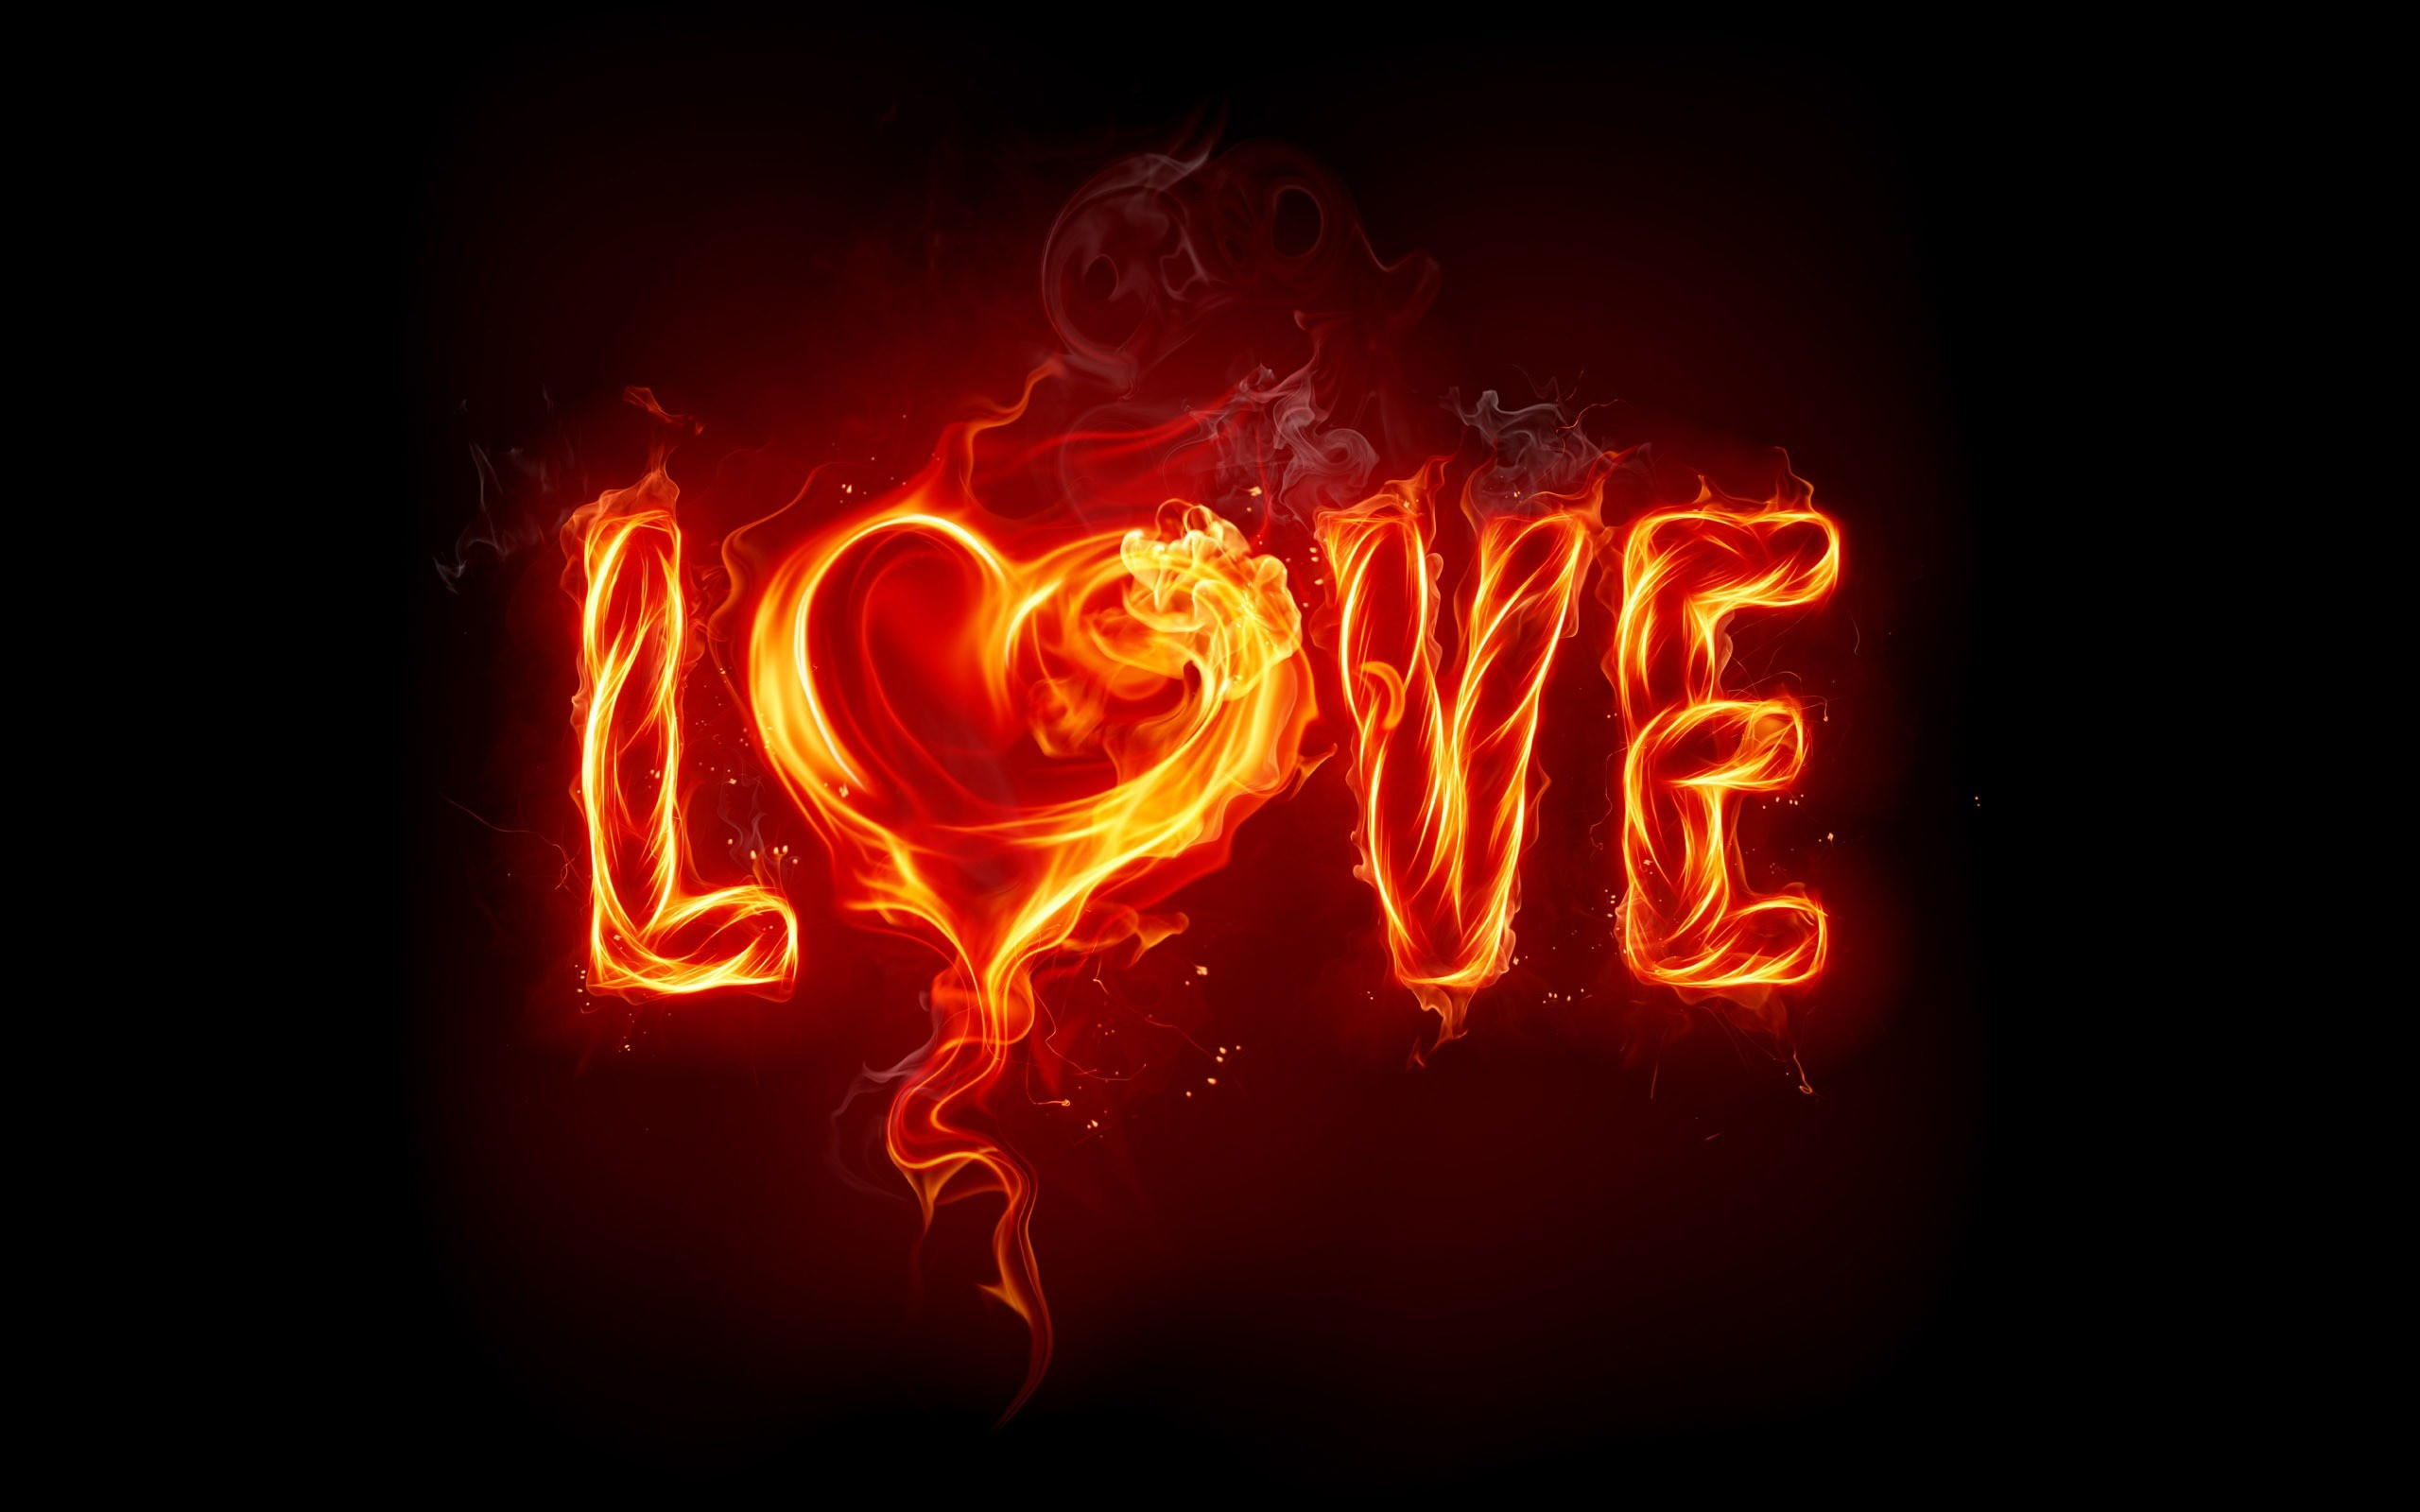 Res: 2560x1600, Love Fire Wallpaper Valentines Day Holidays